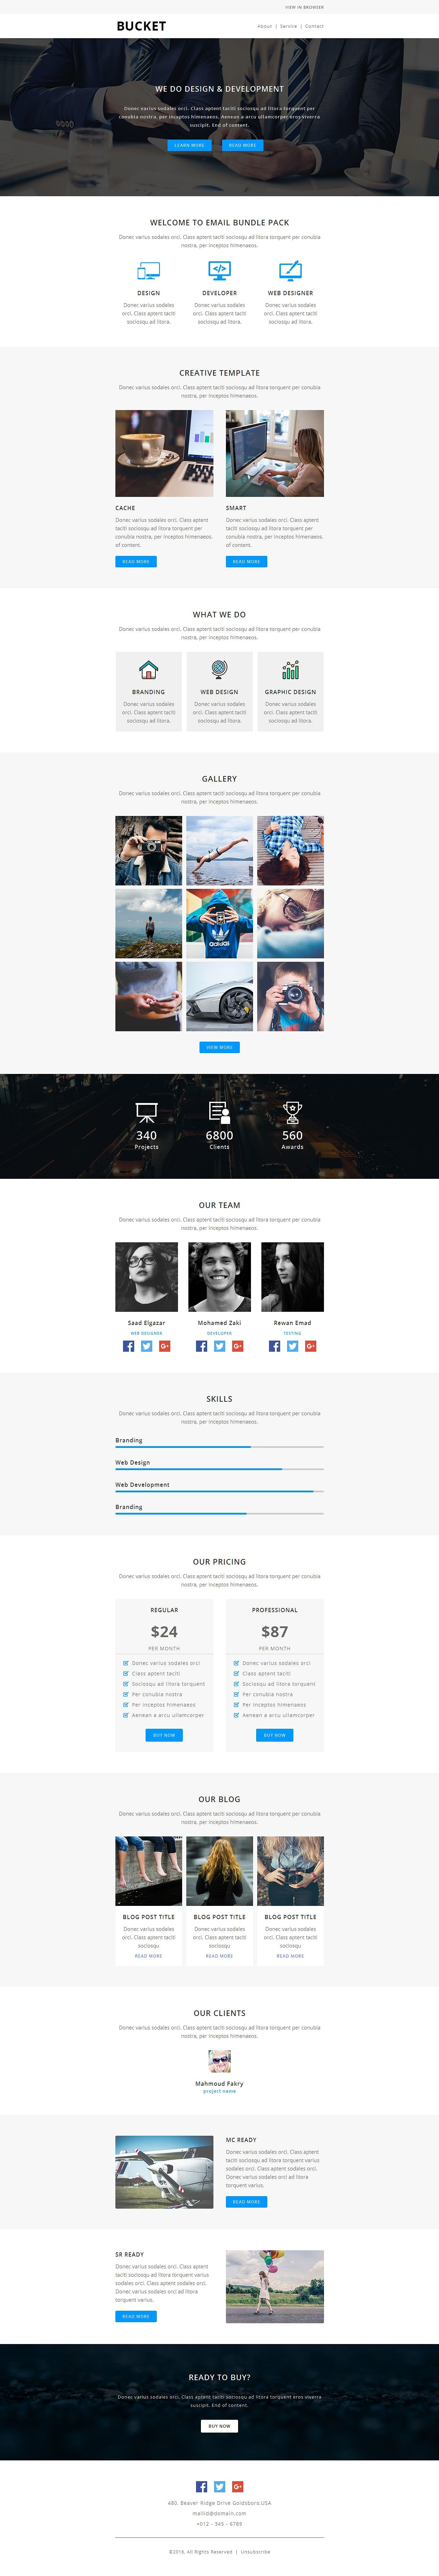 Bucket  Responsive Email Template Js Html Css  Email Templates